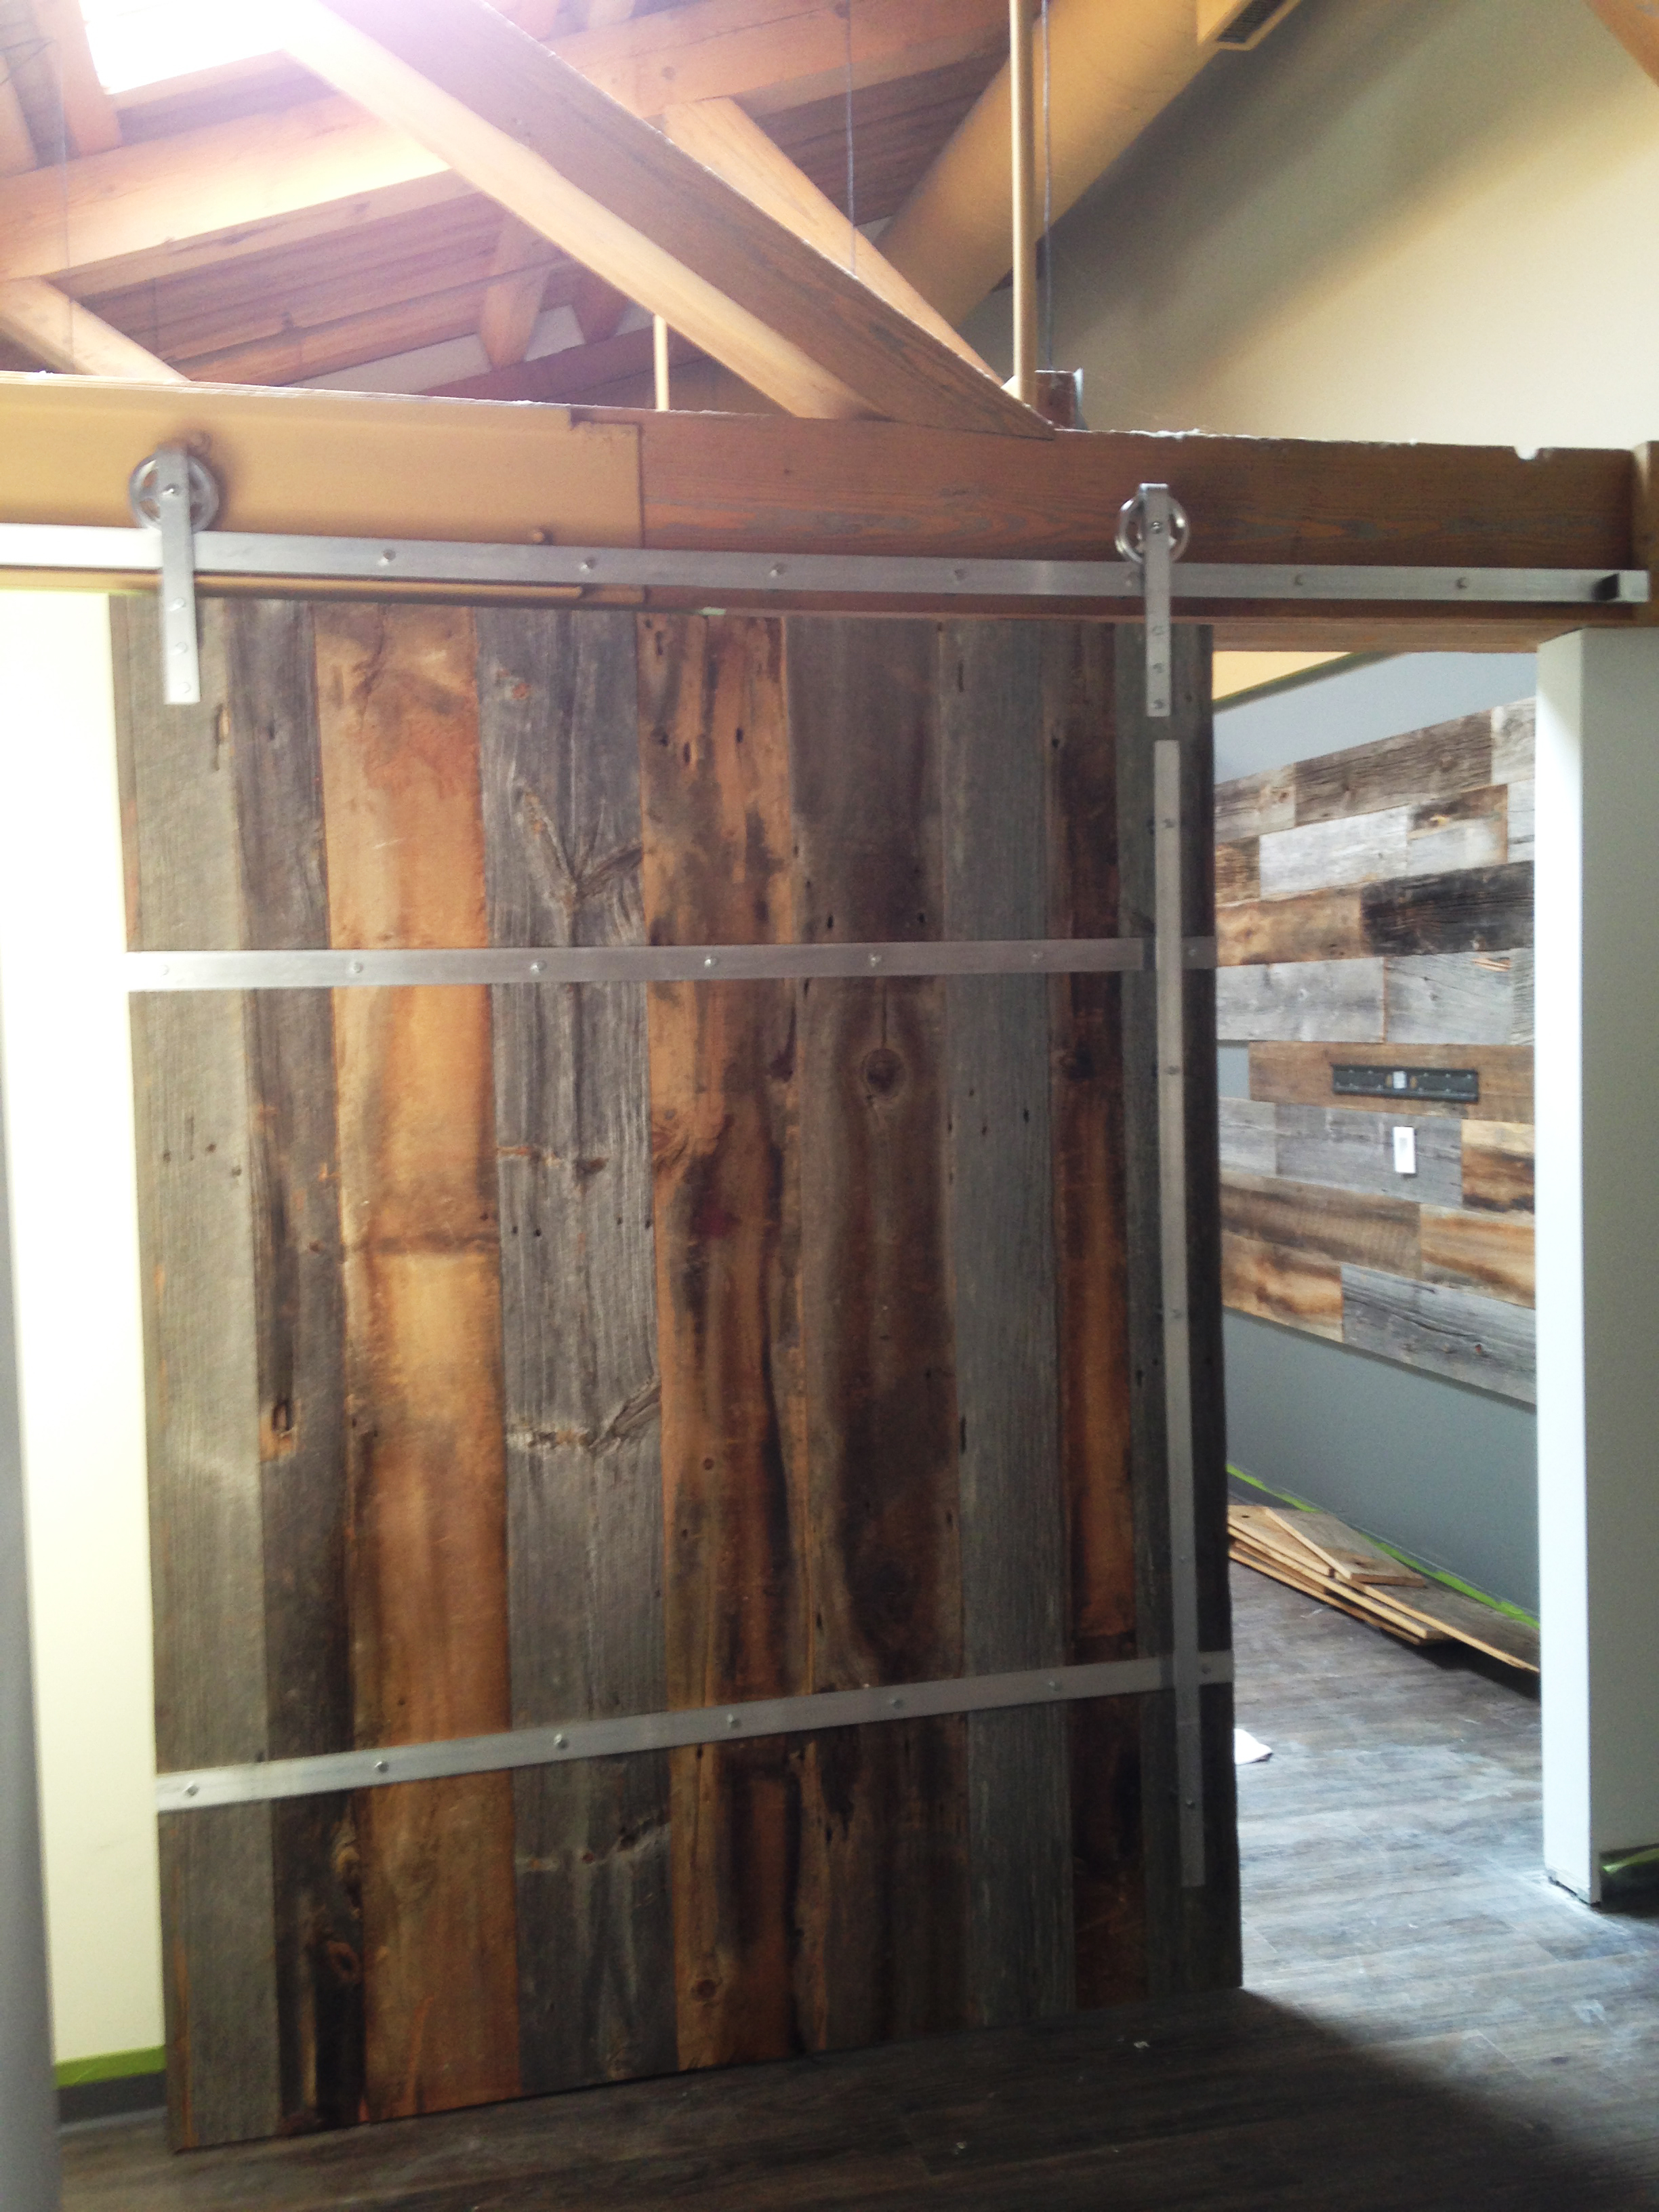 Notice there is a featured wall inside the room with barn board cladding.